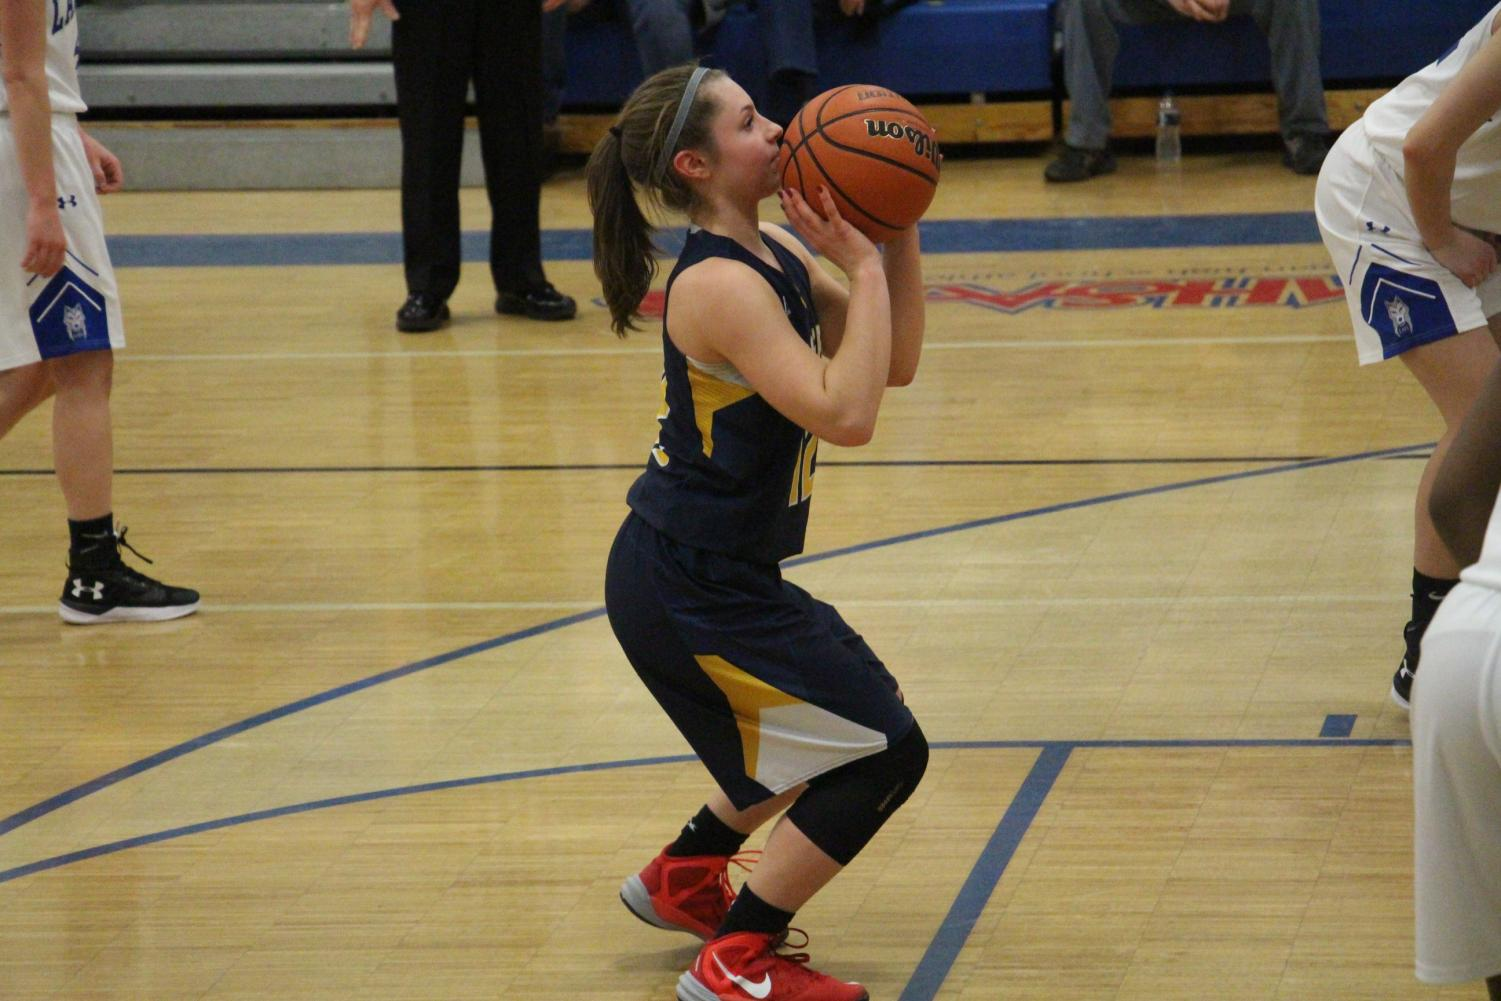 Elise Vitale at the free throw line against rival Lakeview on January 19th, 2018